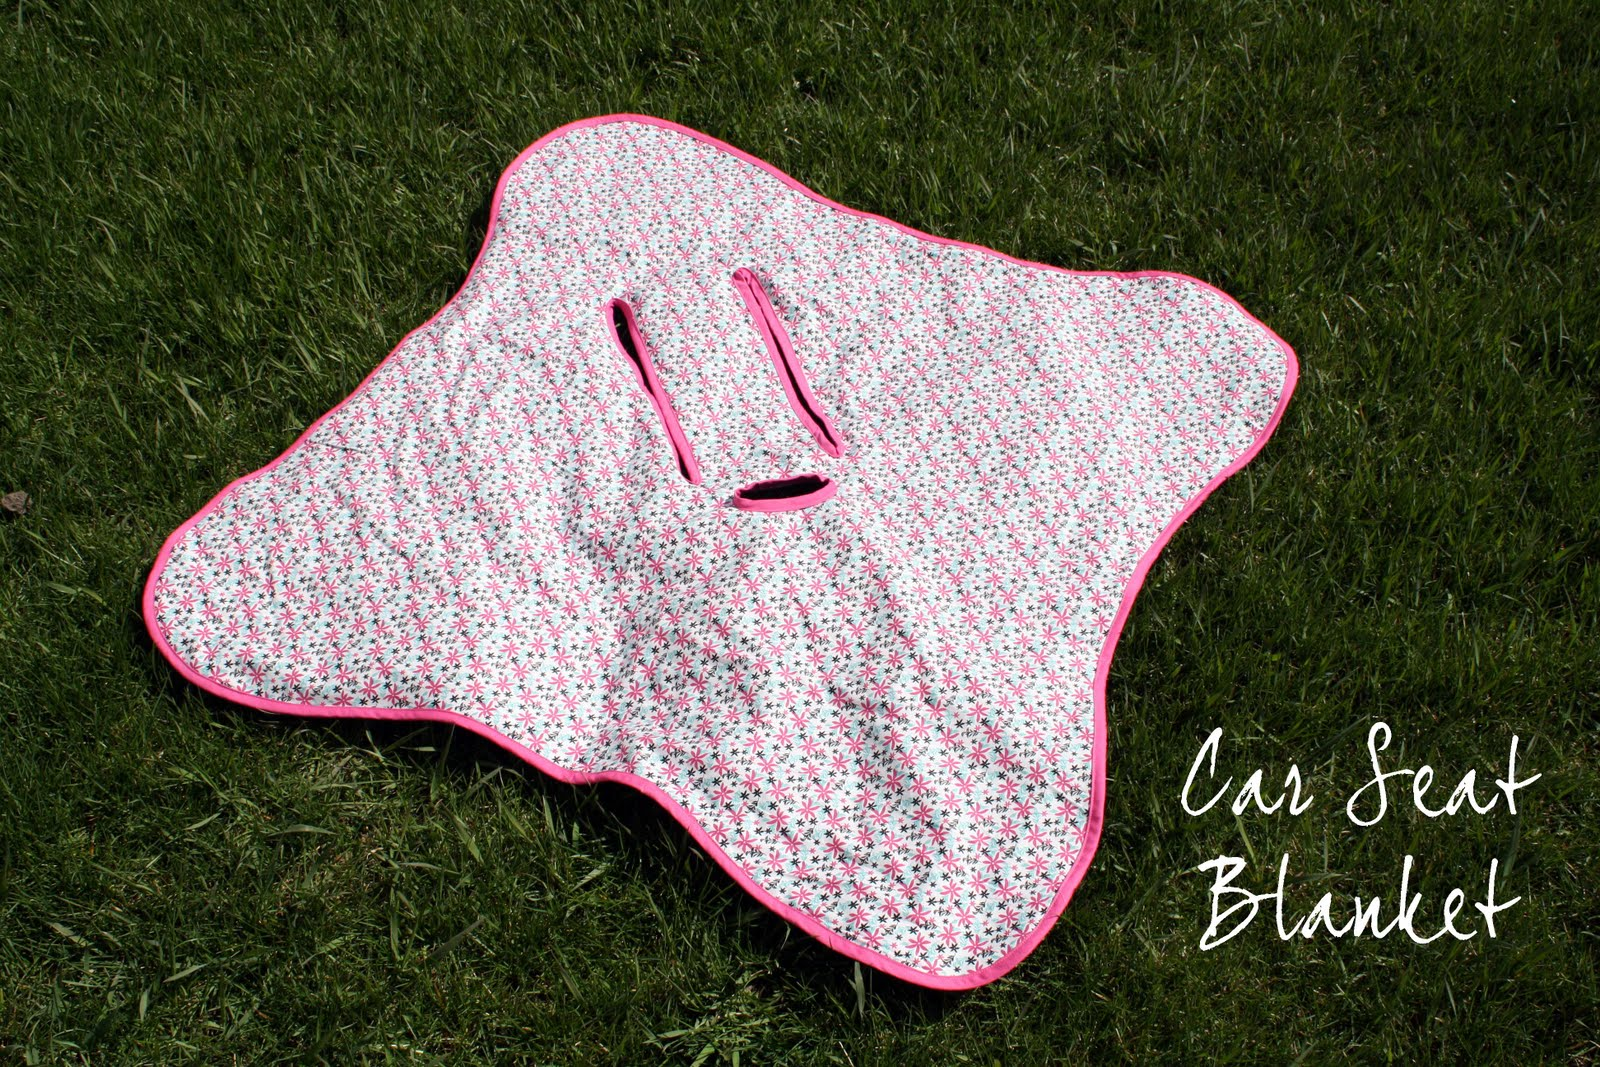 Baby Car Seat Blanket Pattern